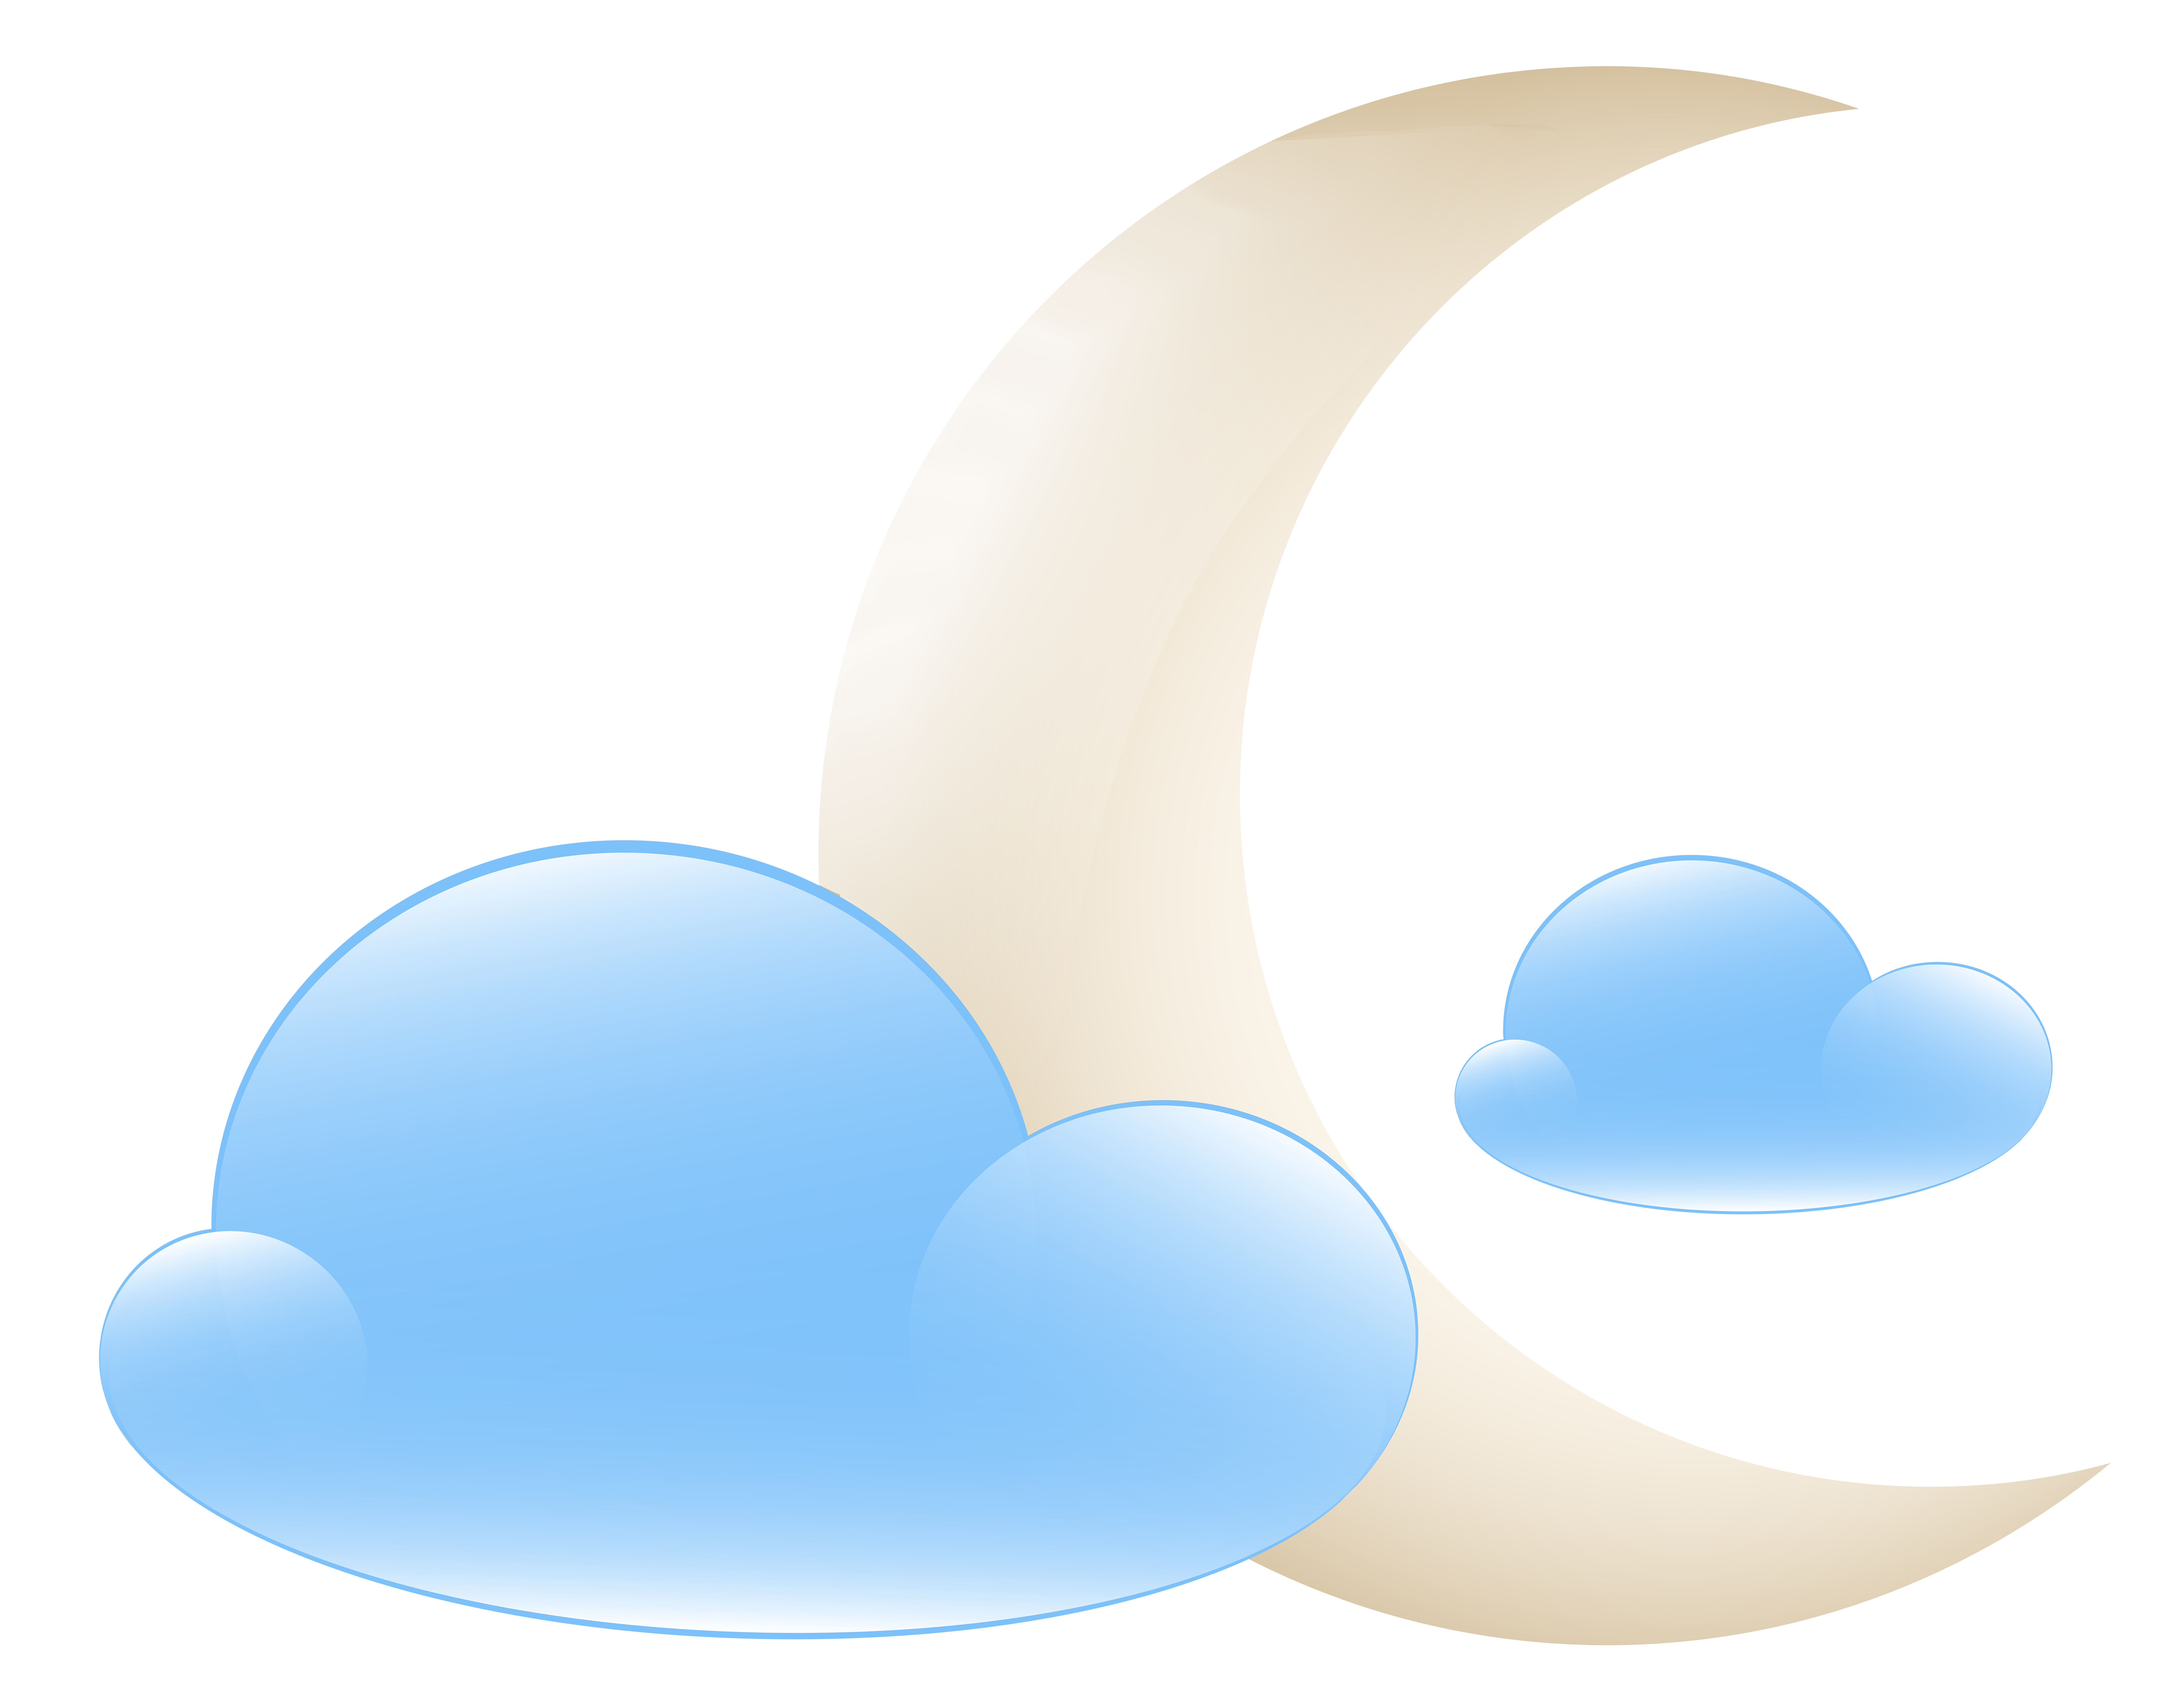 Clouds clipart weather. Moon with icon png